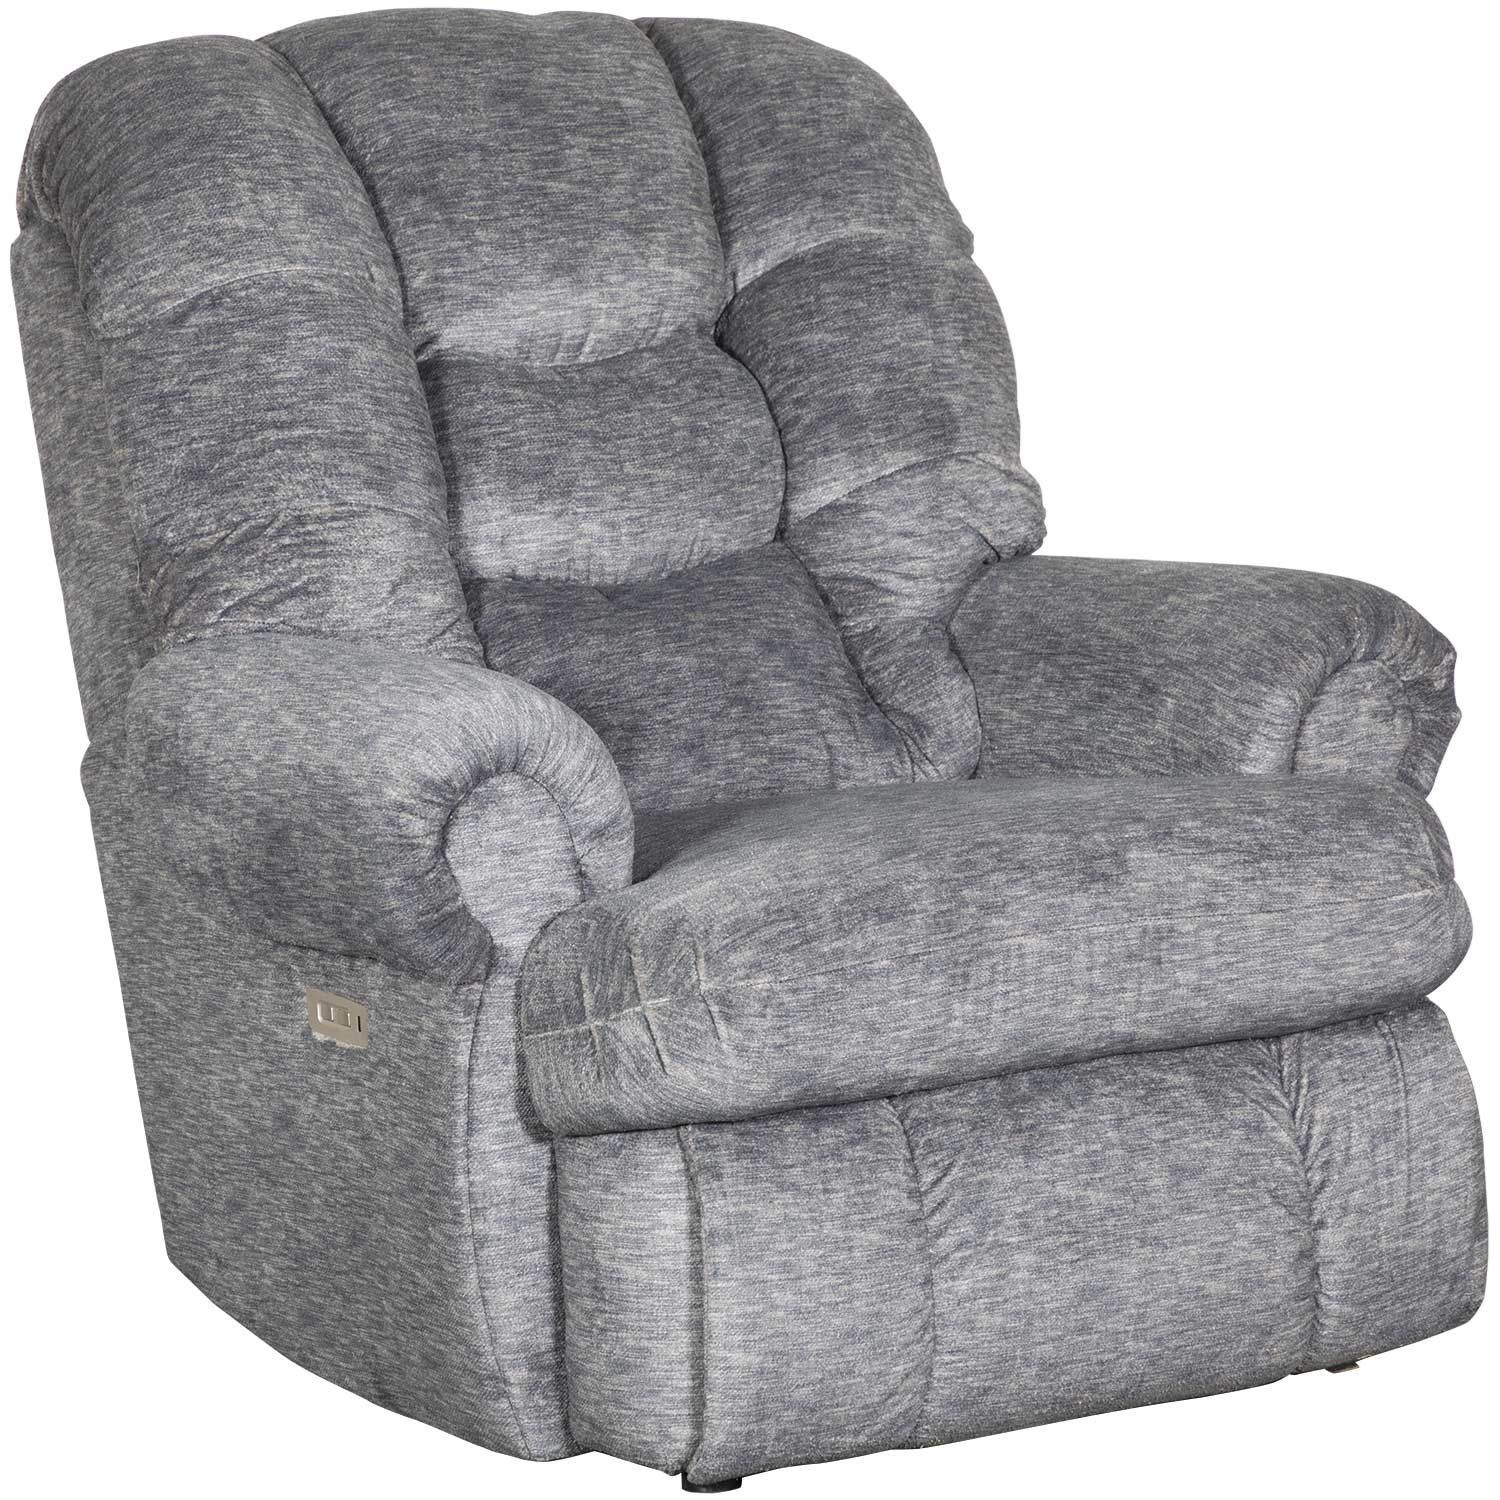 Comfort King Charcoal Power Rocker Recliner 4501p 19 Gladiator